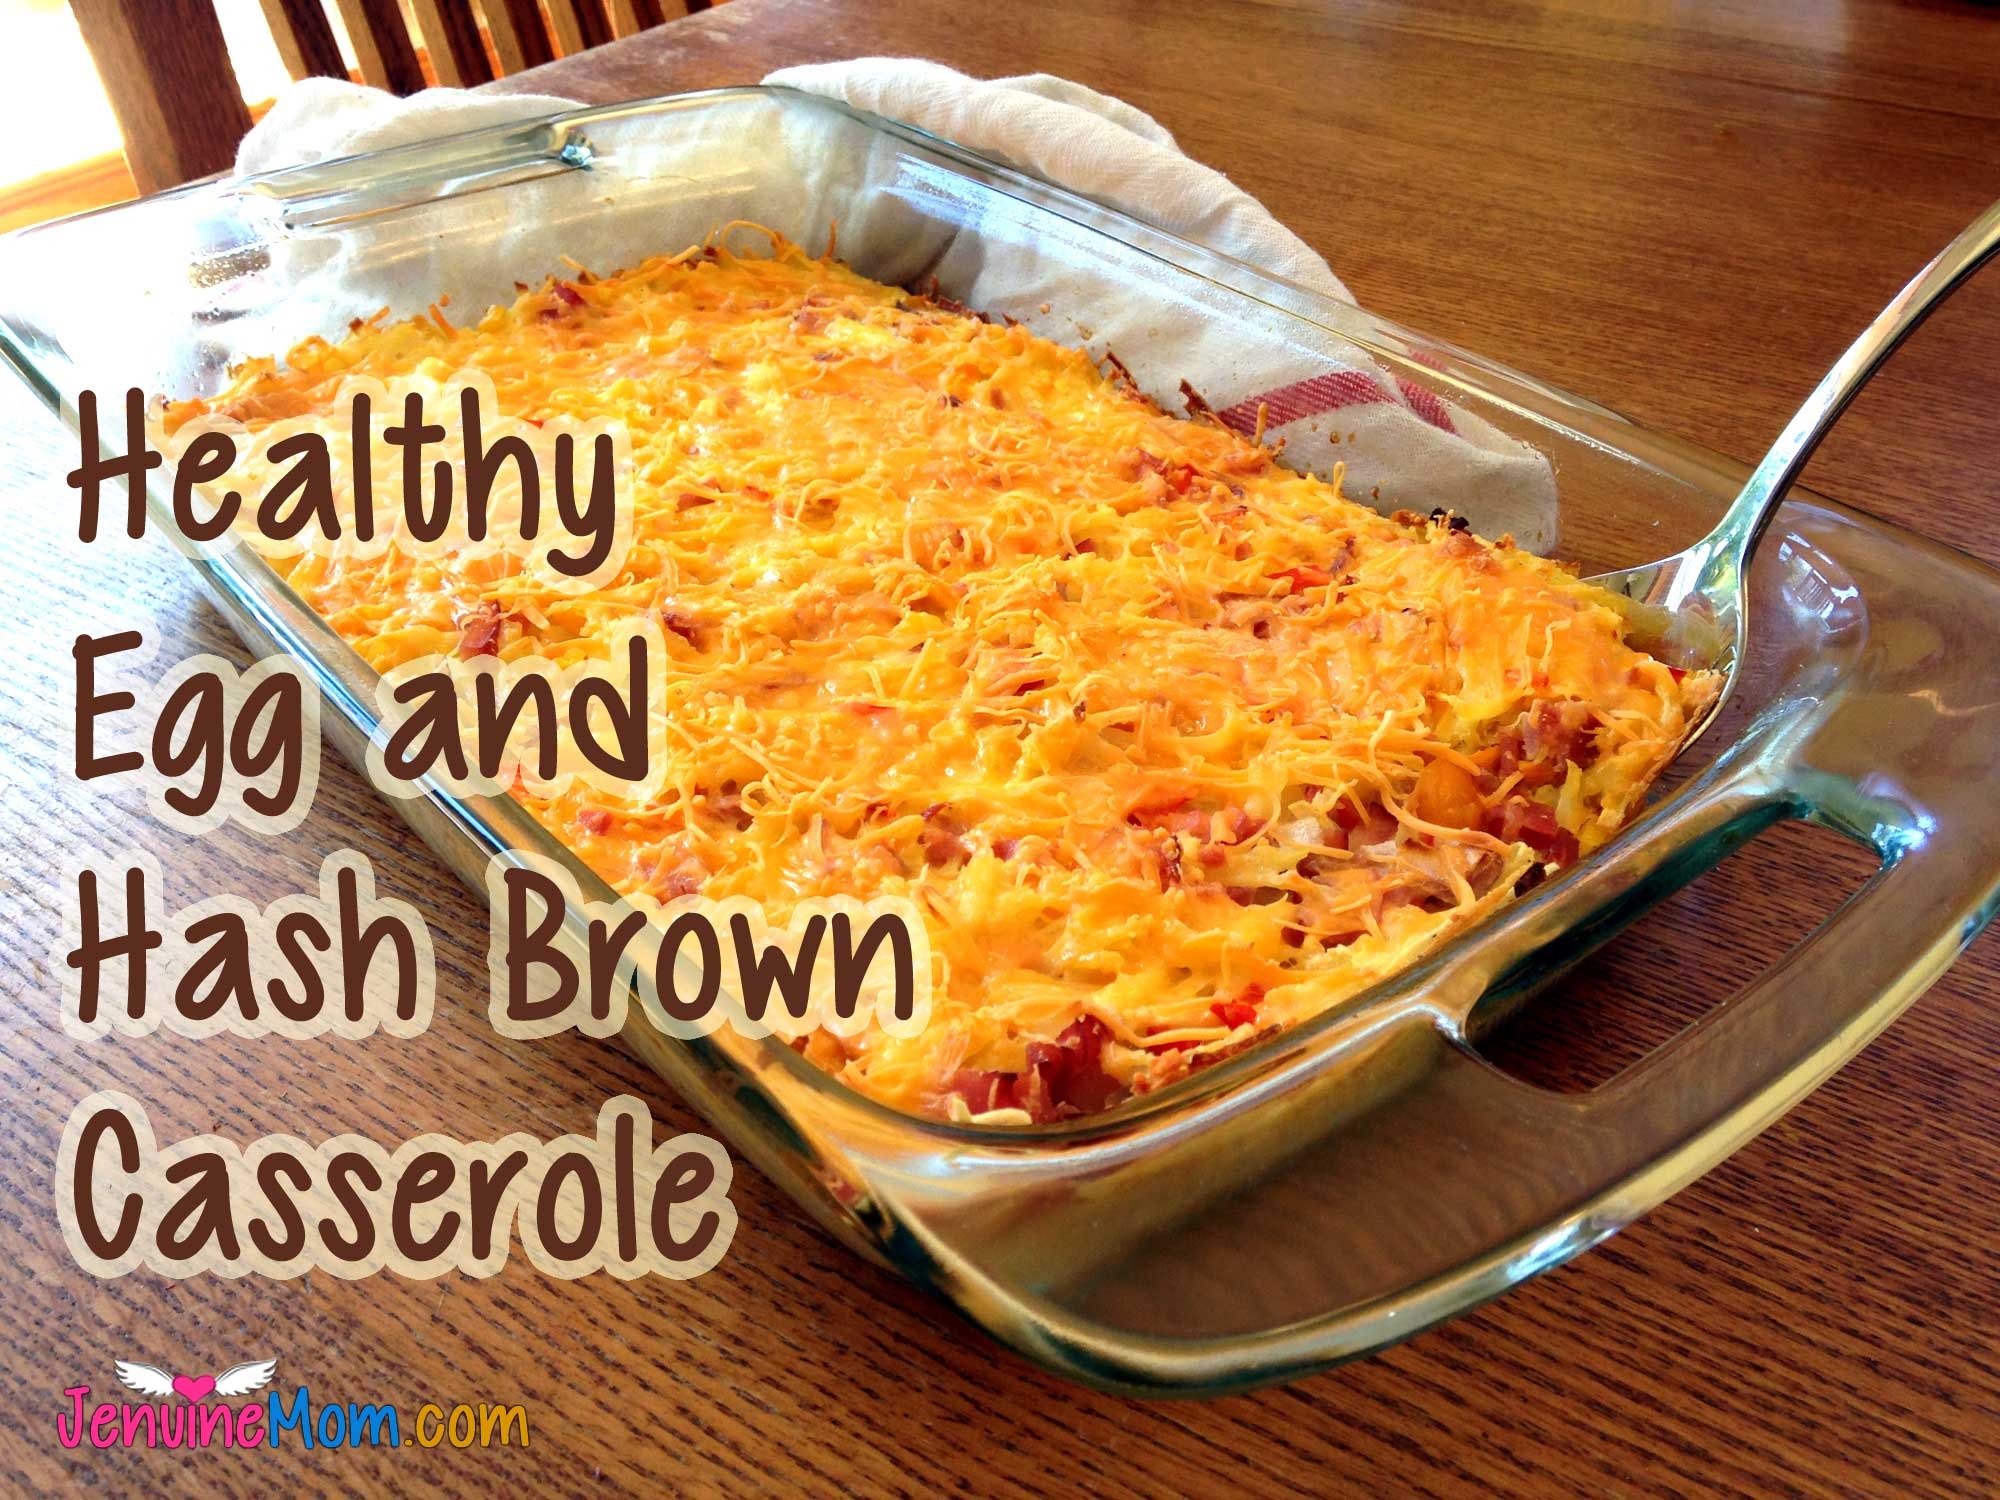 Breakfast Egg, Cheese, and Hash Brown Casserole: 100% Simply Filling Great Start to Your Day